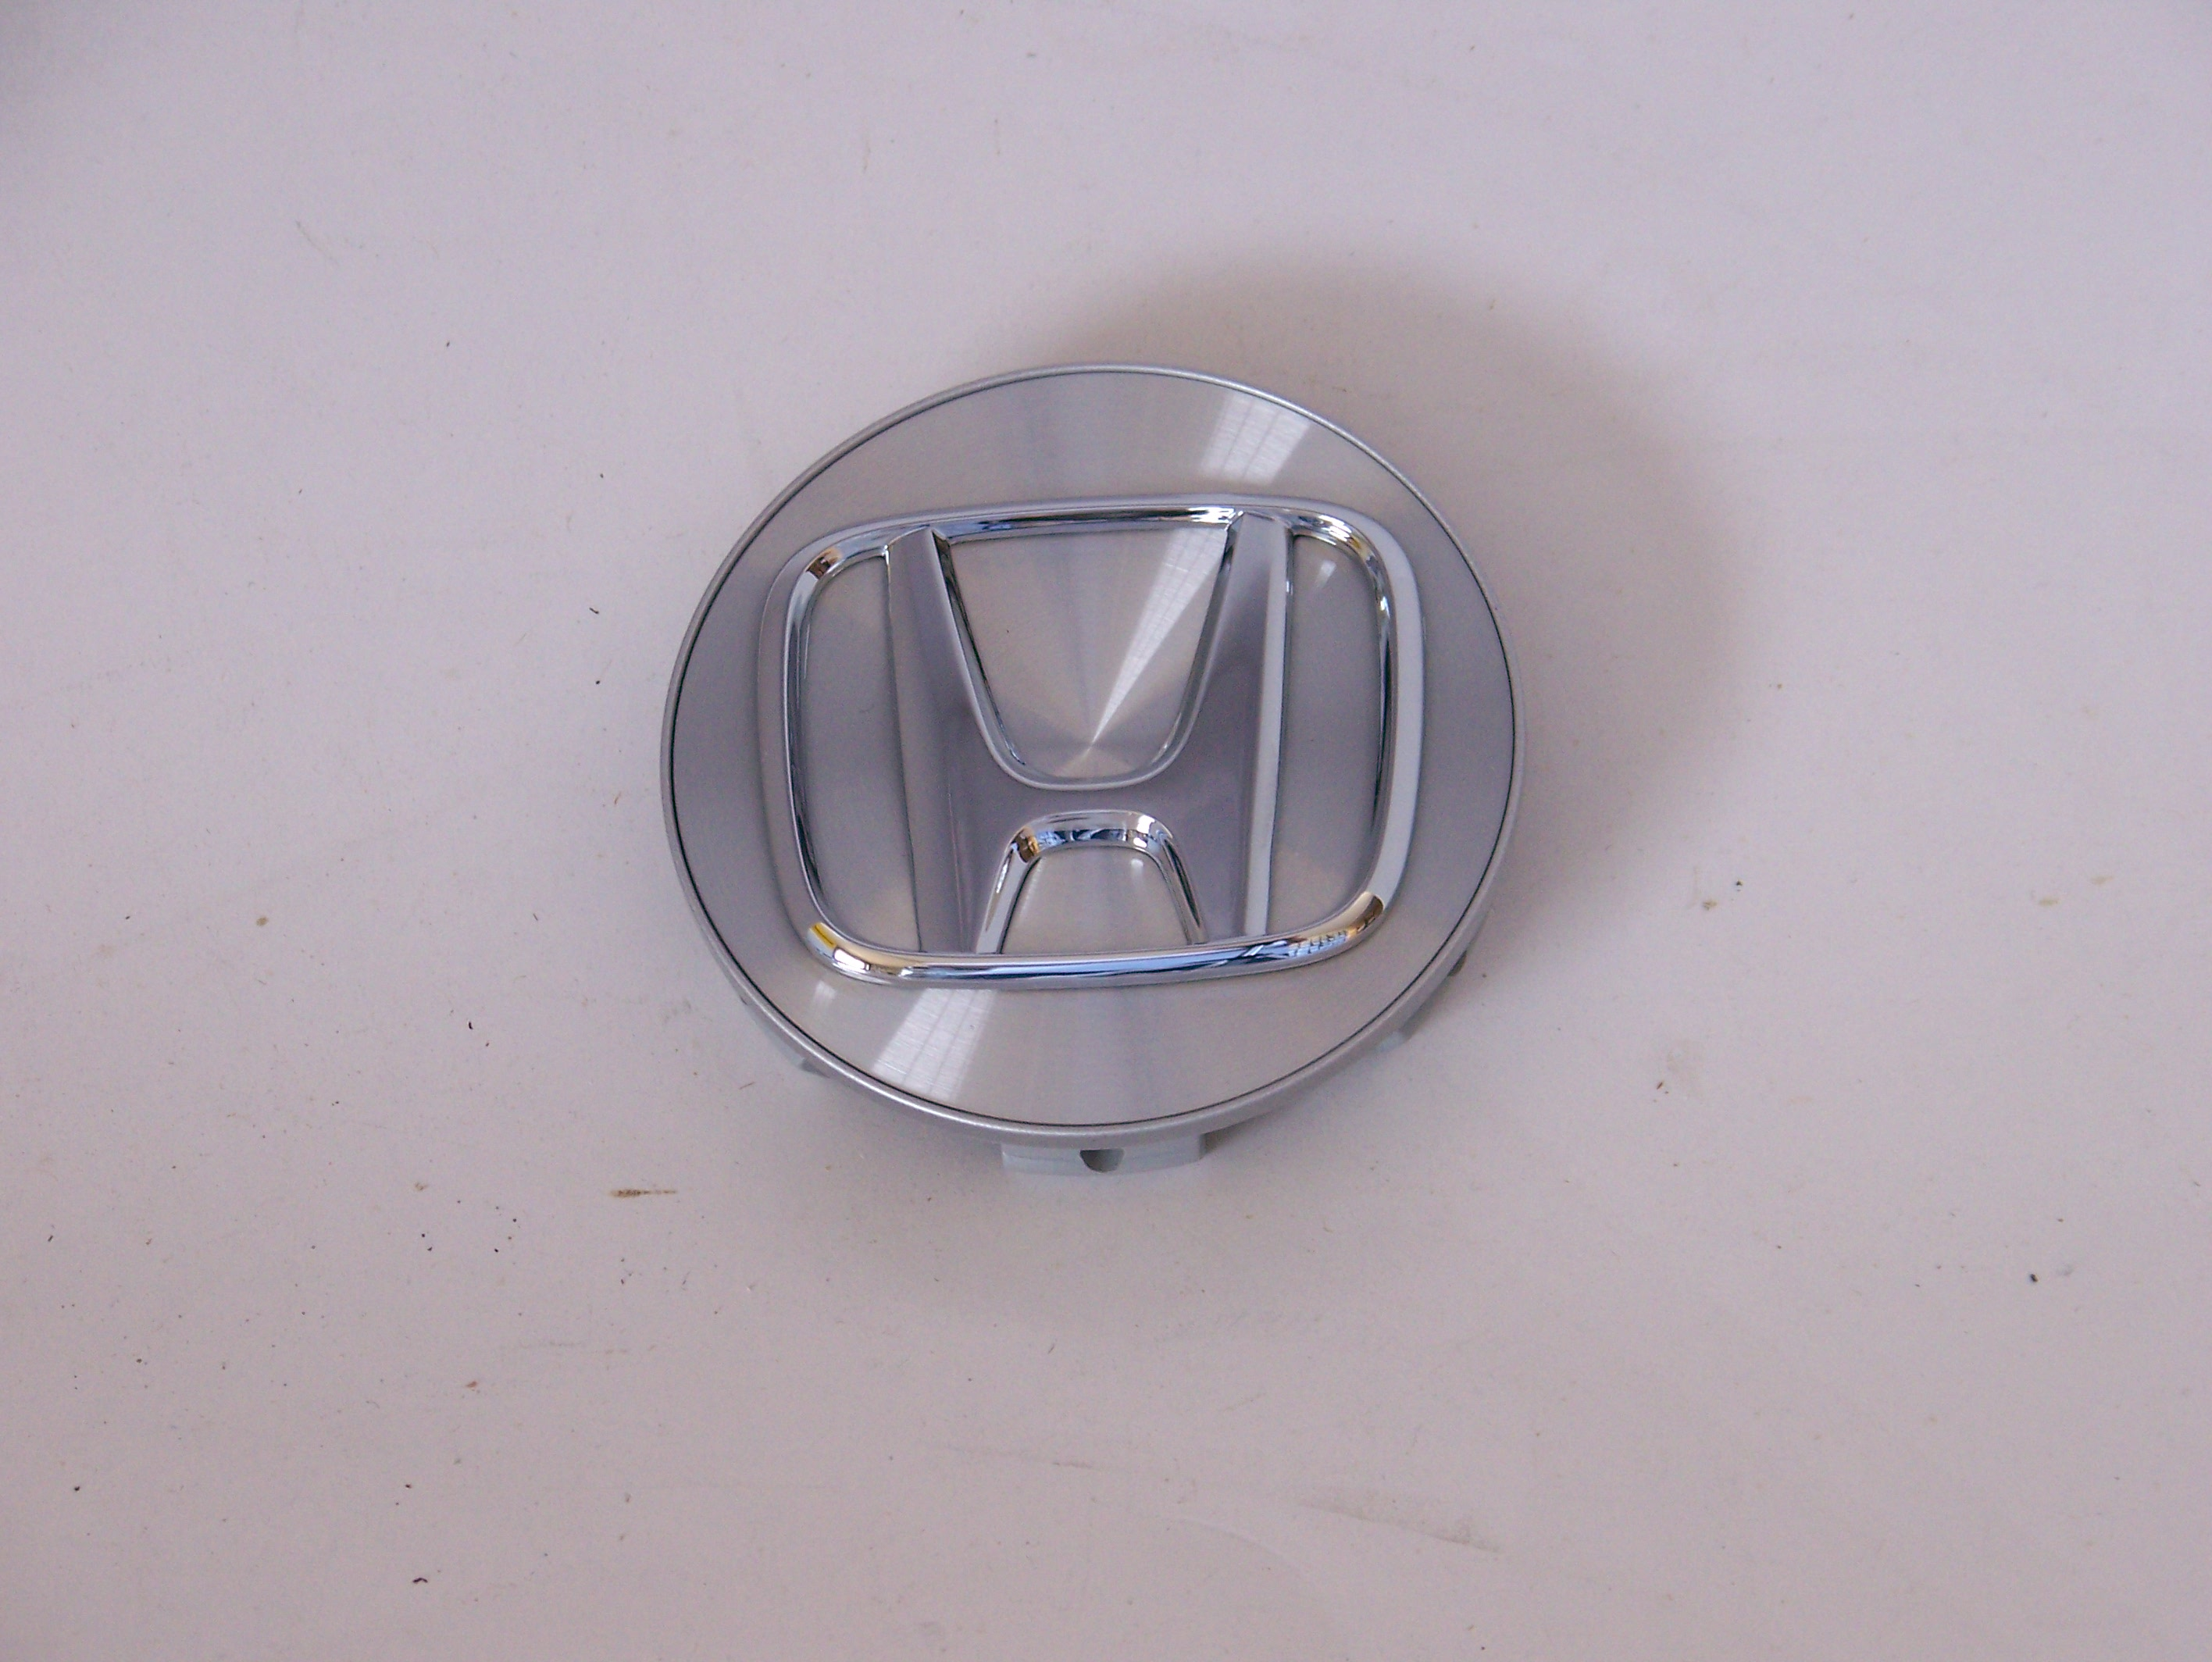 Honda Accord Civic 03-07 Center Cap 63879 P/N 08W17-SDB-1M00-A4